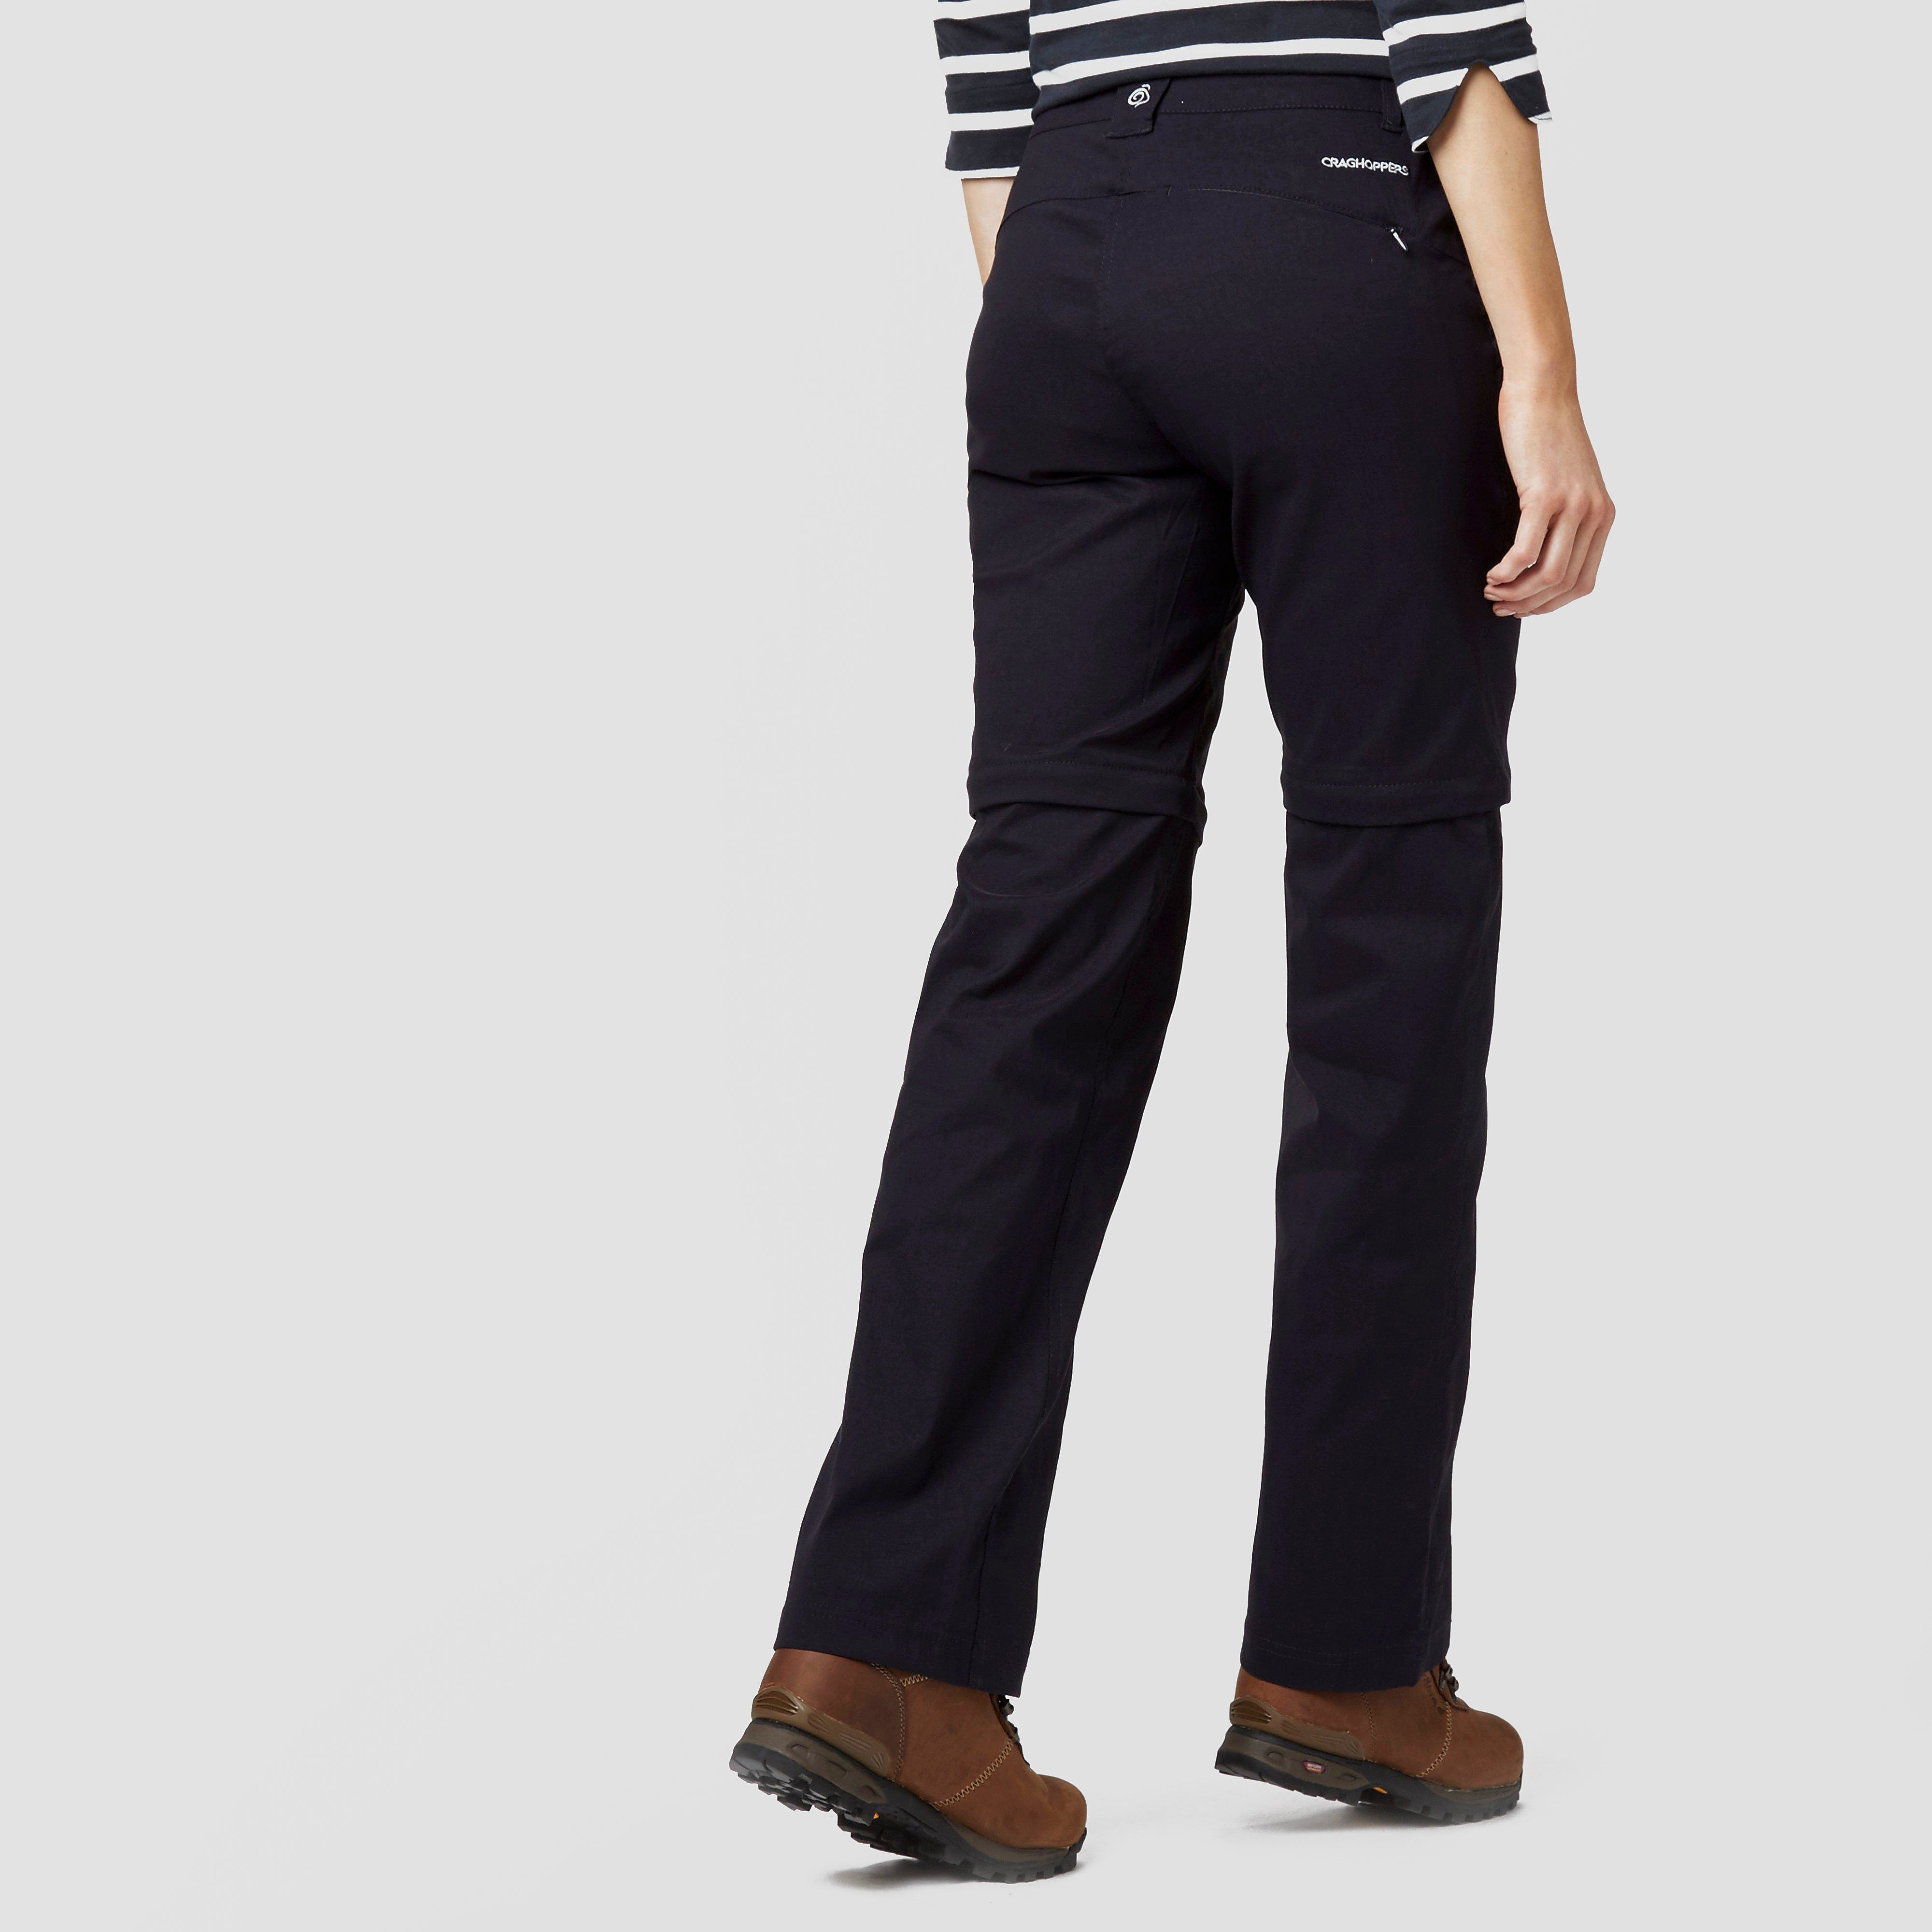 Craghoppers Kiwi Pro Stretch Convertible Women's Trousers